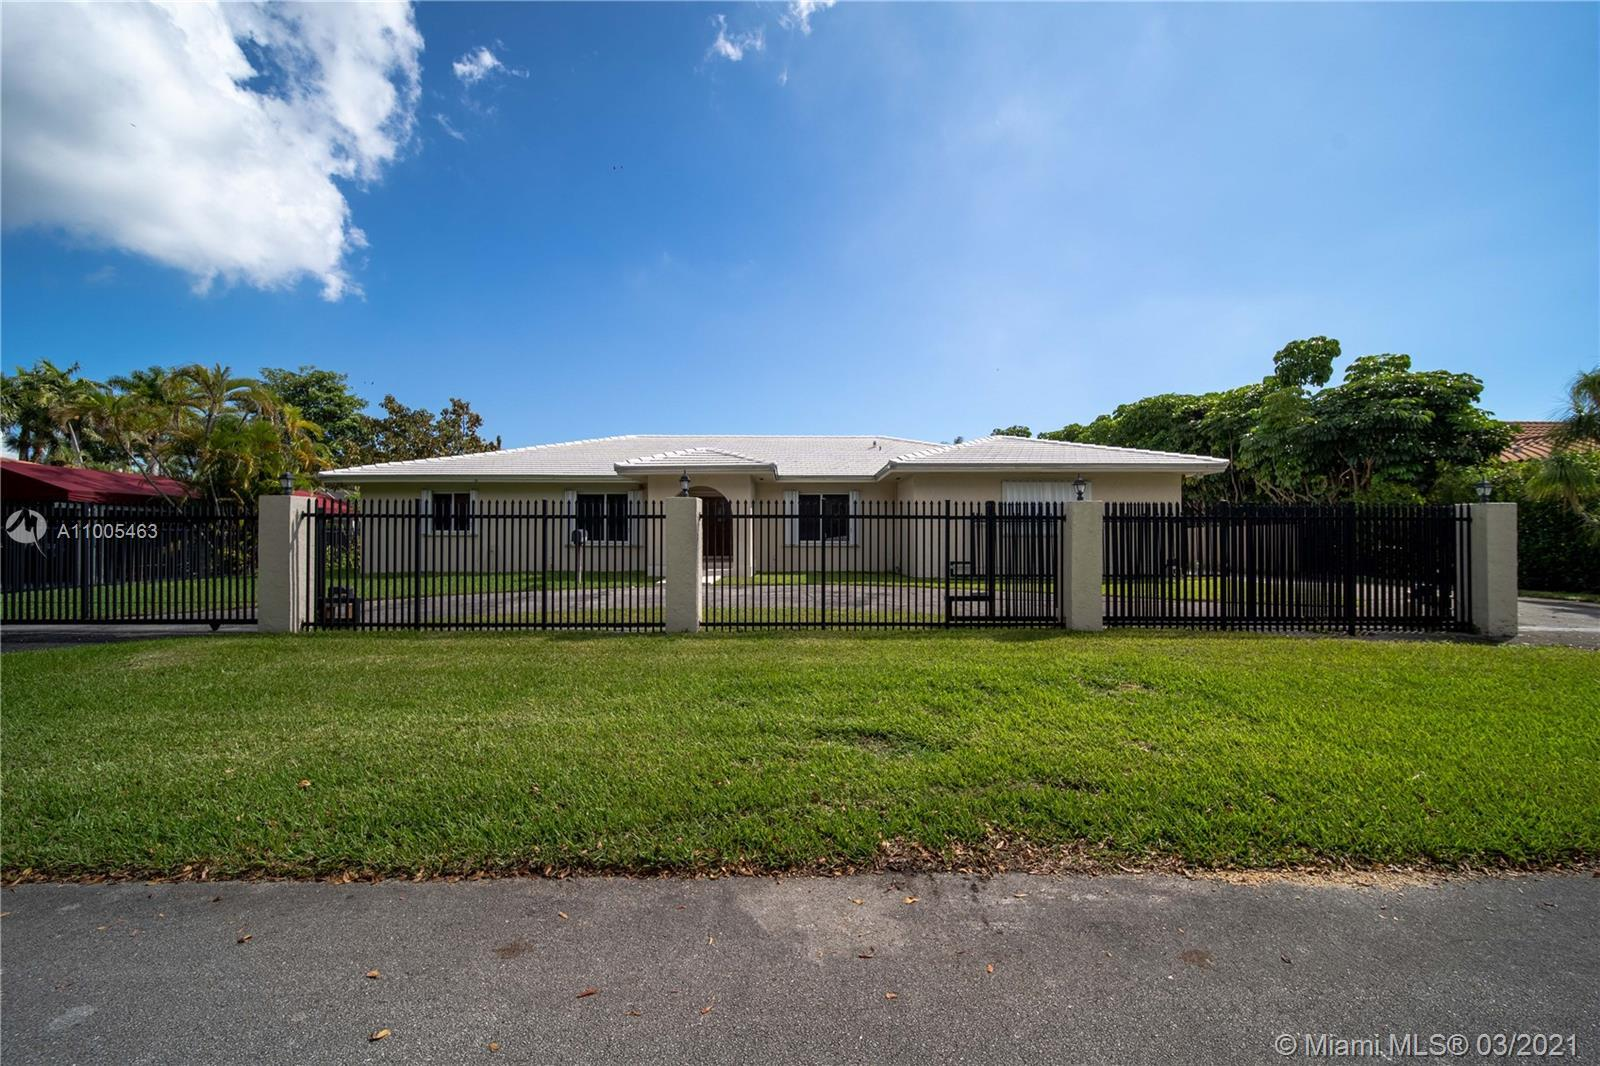 Nestled on a quiet street in Pinecrest by the sea relax and unwind in this beautiful home. Safe and